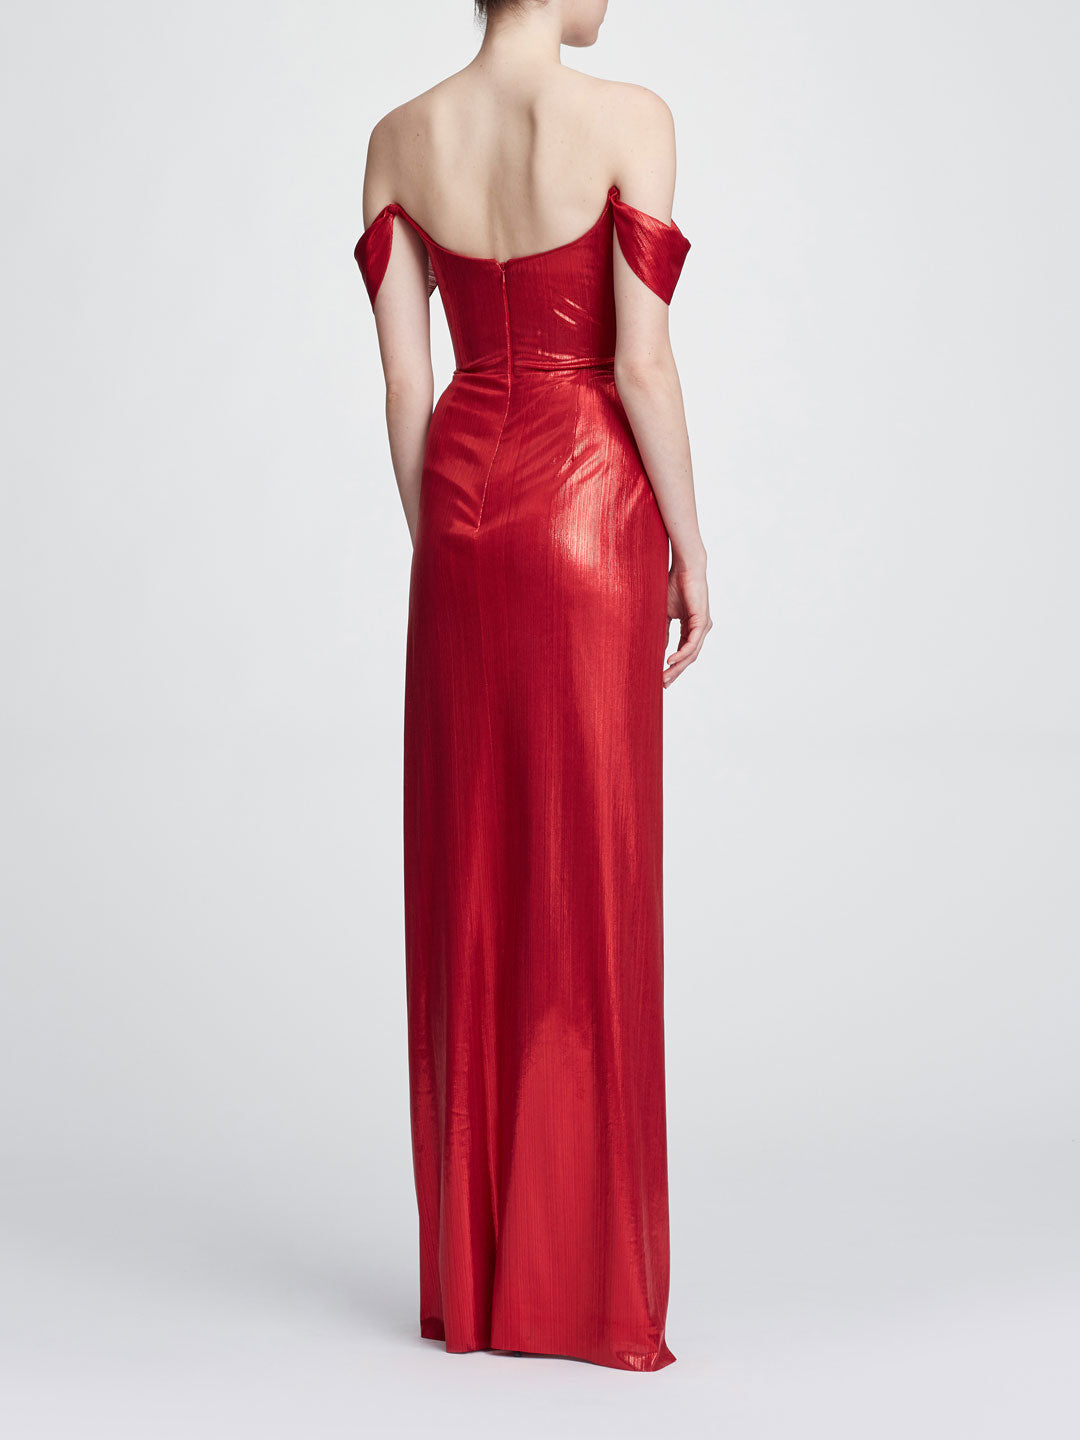 ea883b20 Off-shoulder gown | Shop Marchesa Notte